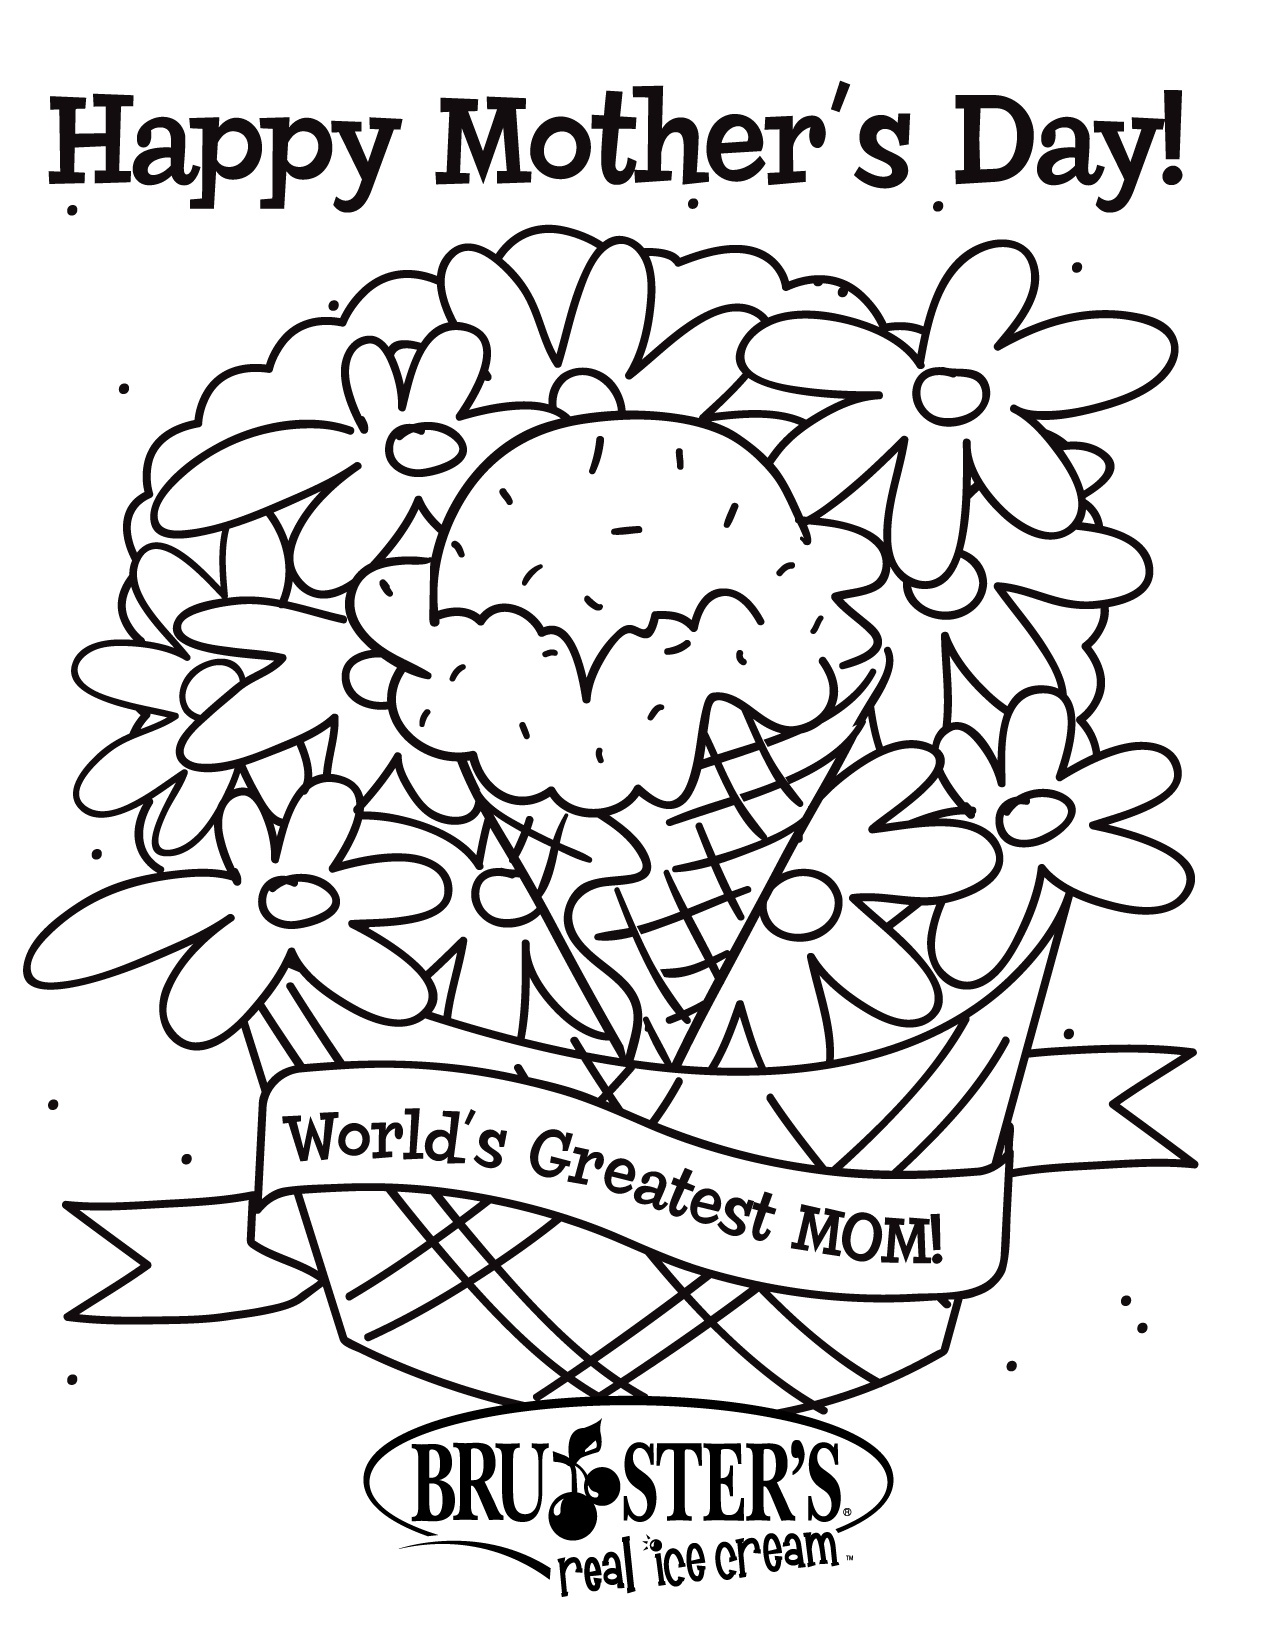 Free Printable Mothers Day Coloring Pages For Kids - Free Mother's Day Printables